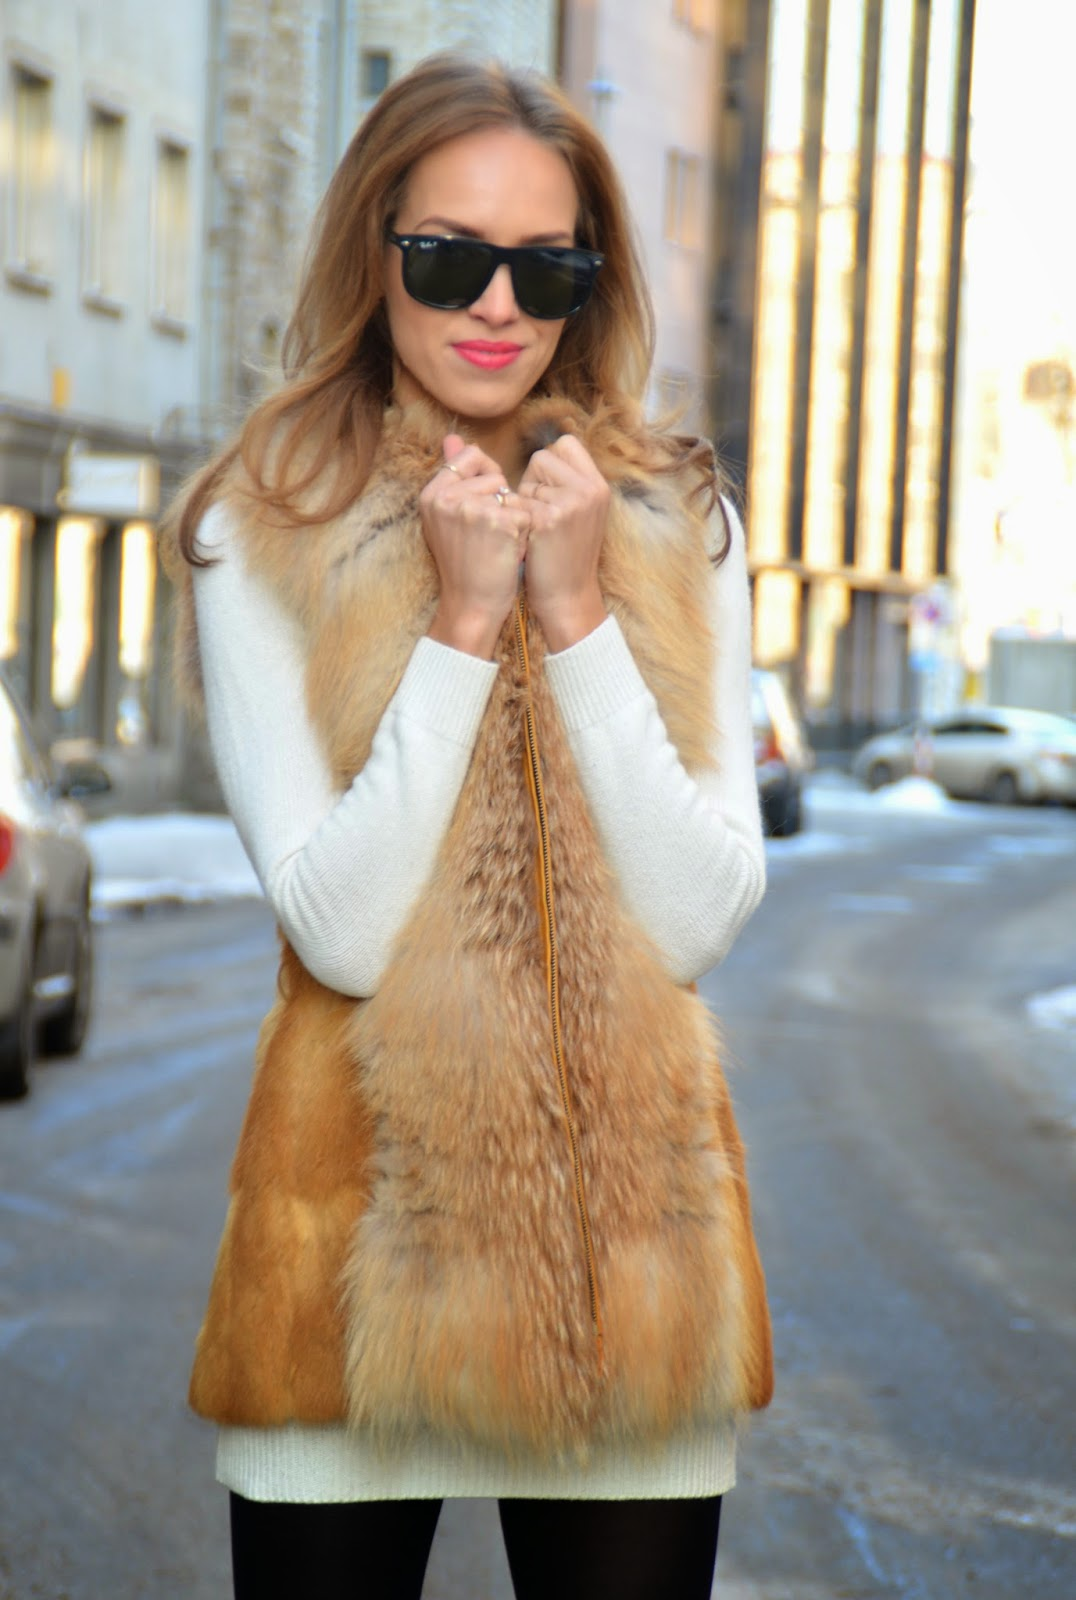 luxury-outfit-fashion-fur-vest kristjaana mere